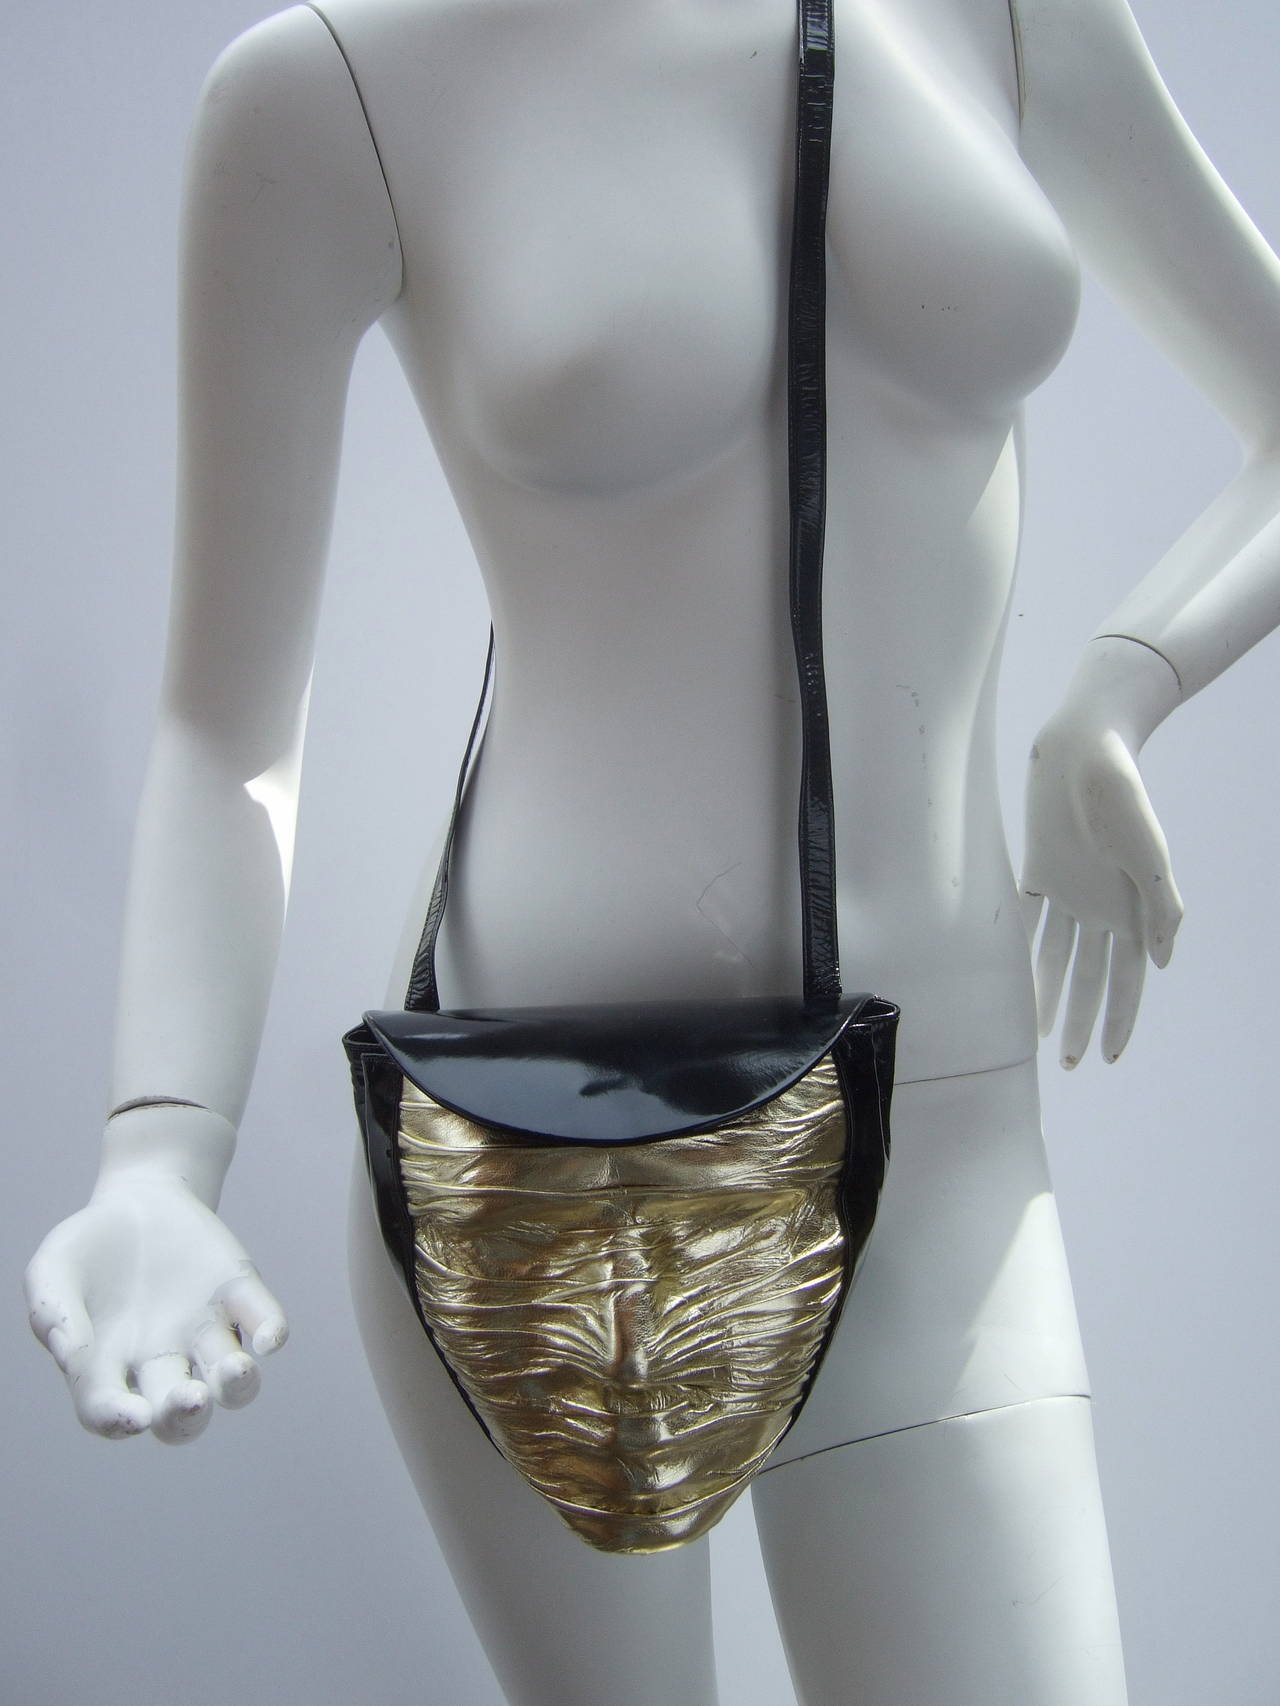 Charles Jourdan Paris Avant-Garde Mummified Handbag c 1980s In Excellent Condition For Sale In Santa Barbara, CA